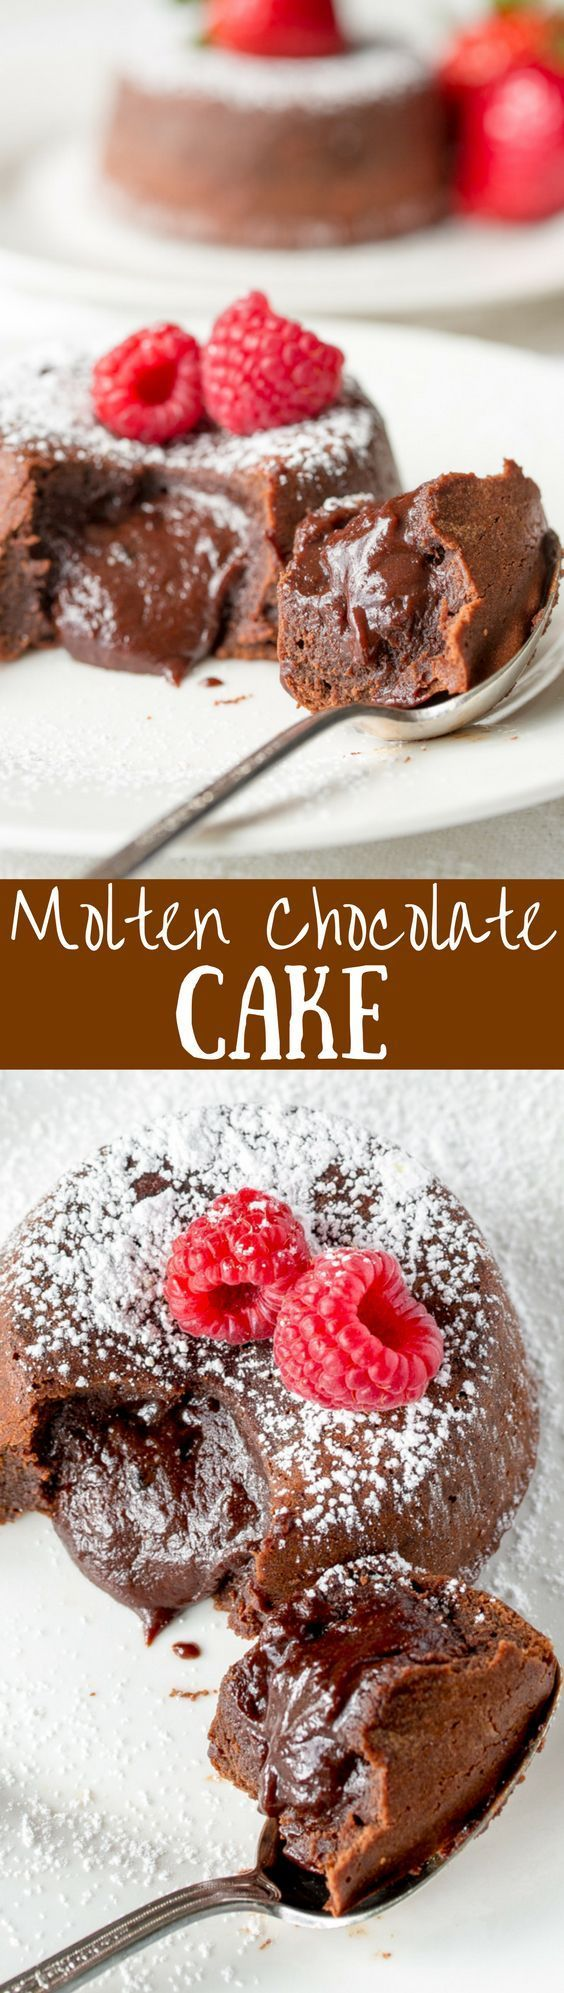 Molten Chocolate Cake -famous for it's tender, moist cake, a light crispy crust, and gooey rich chocolate middle. www.savingdessert.com